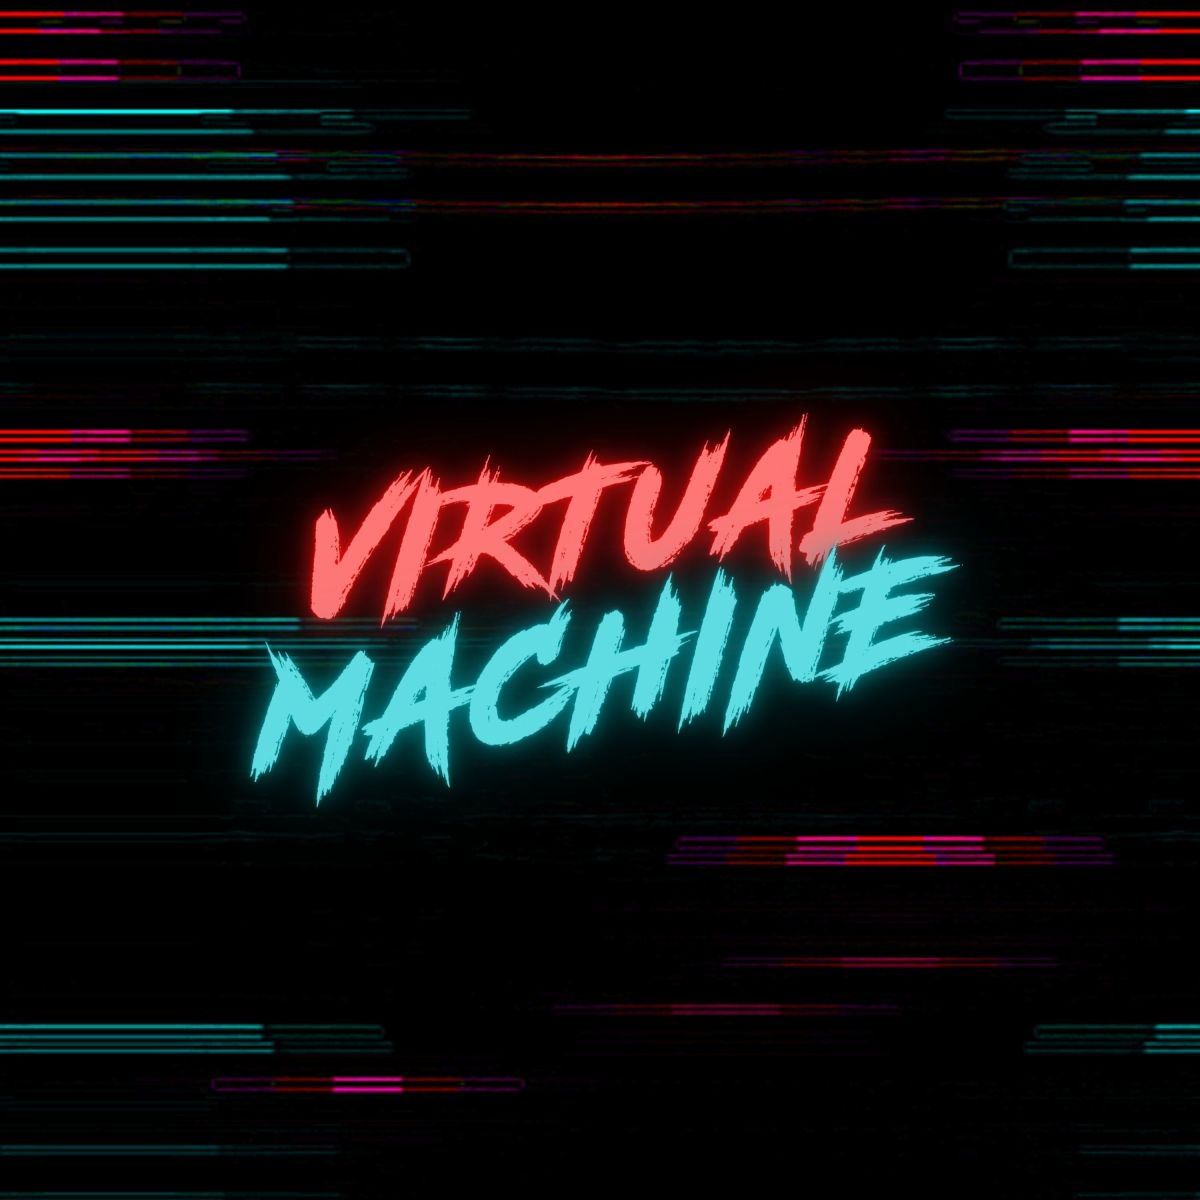 synth-ep-revieww-virtual-machine-by-chris-keya